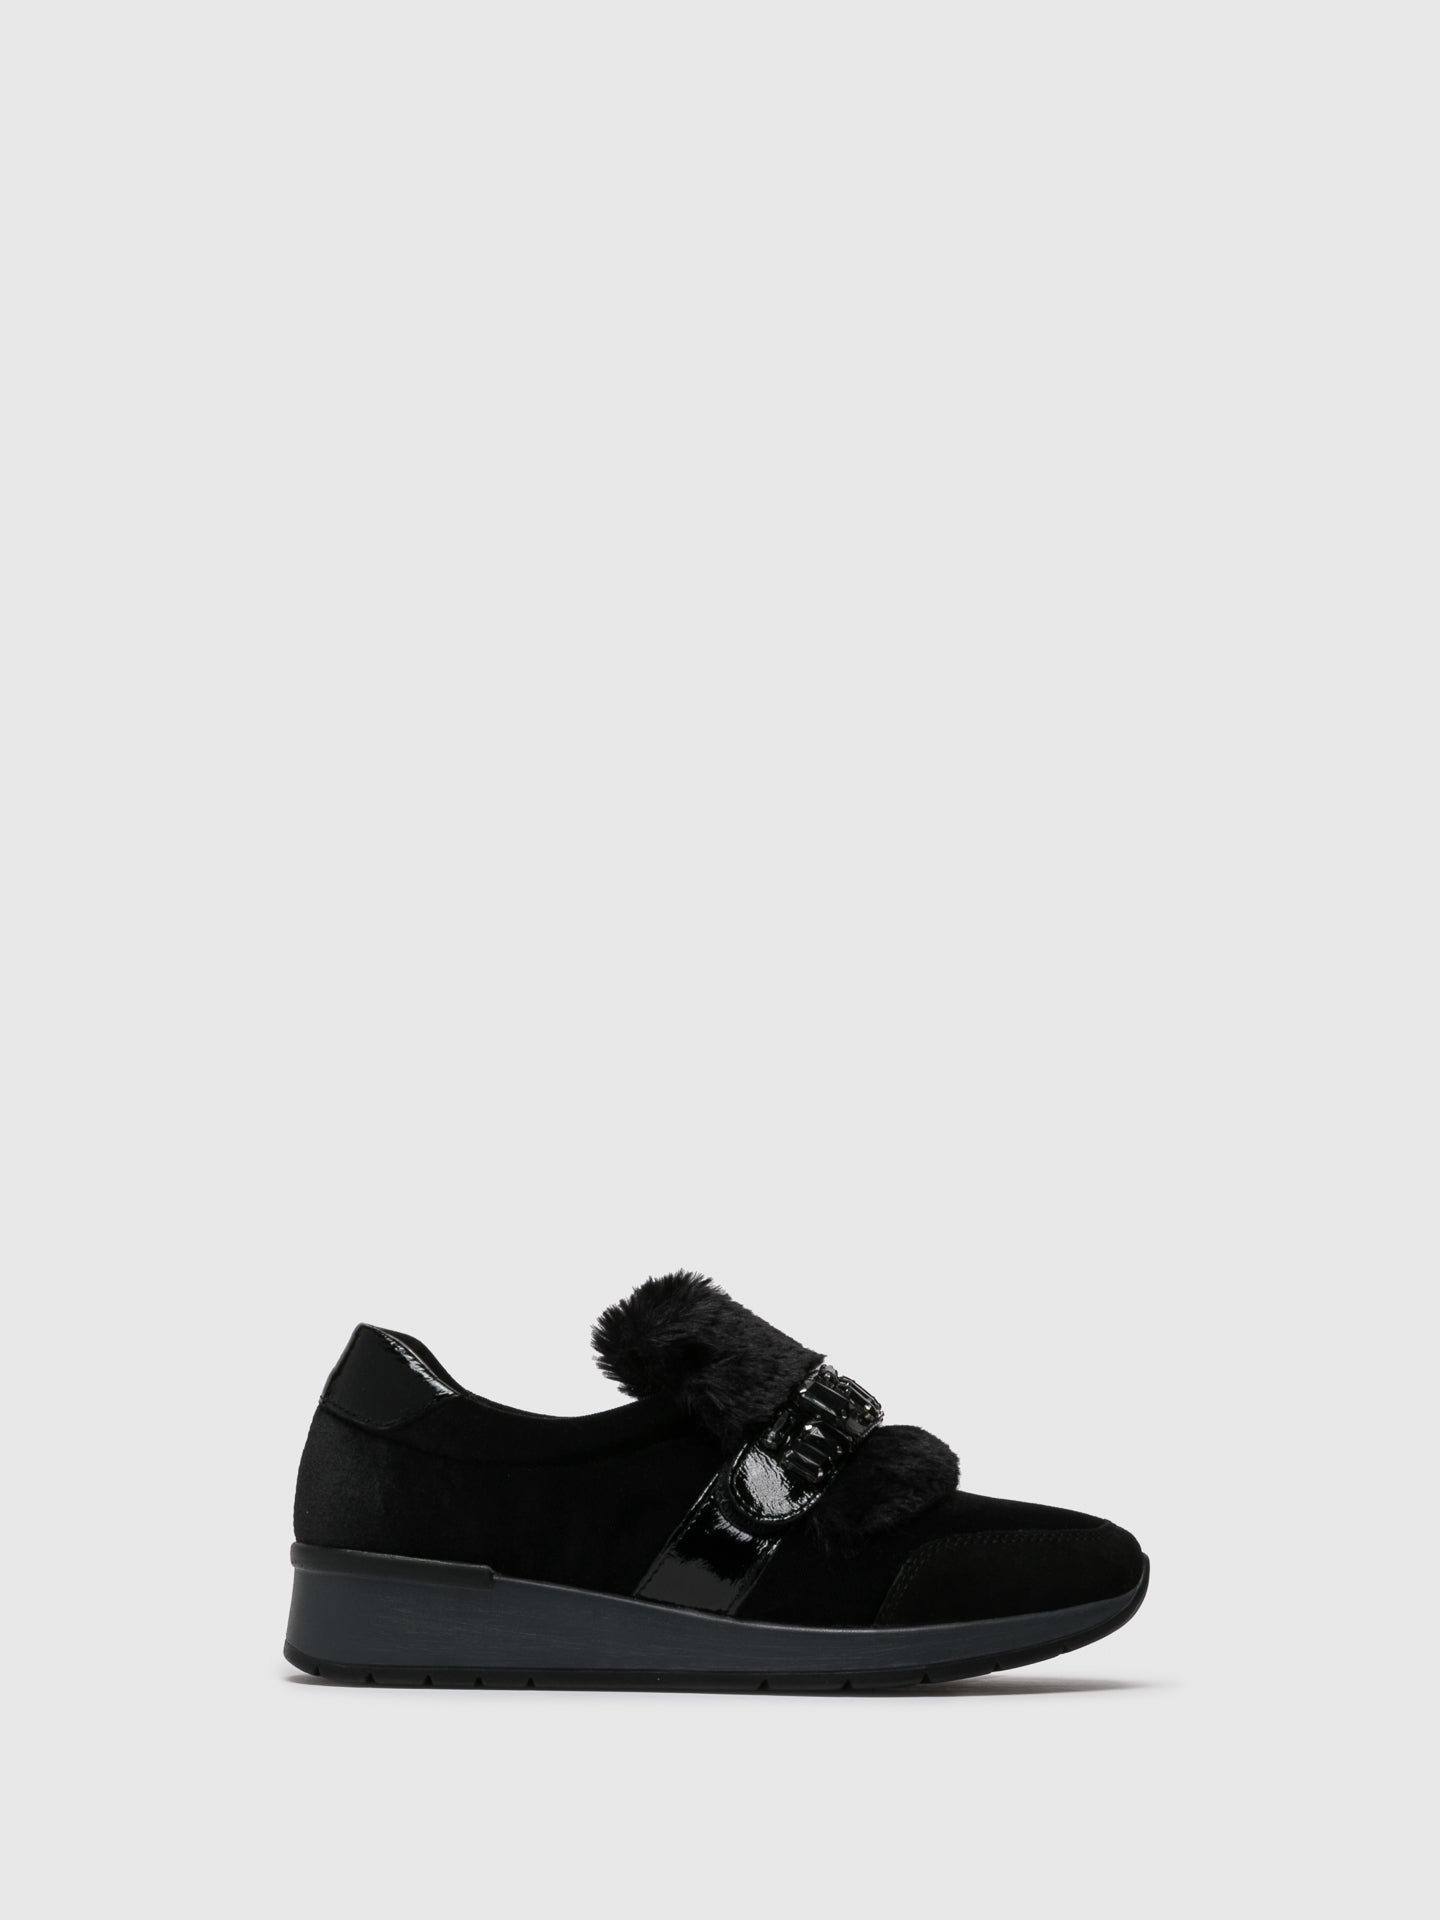 PARODI SUNSHINE Sneakers mit Applikationen in Noir